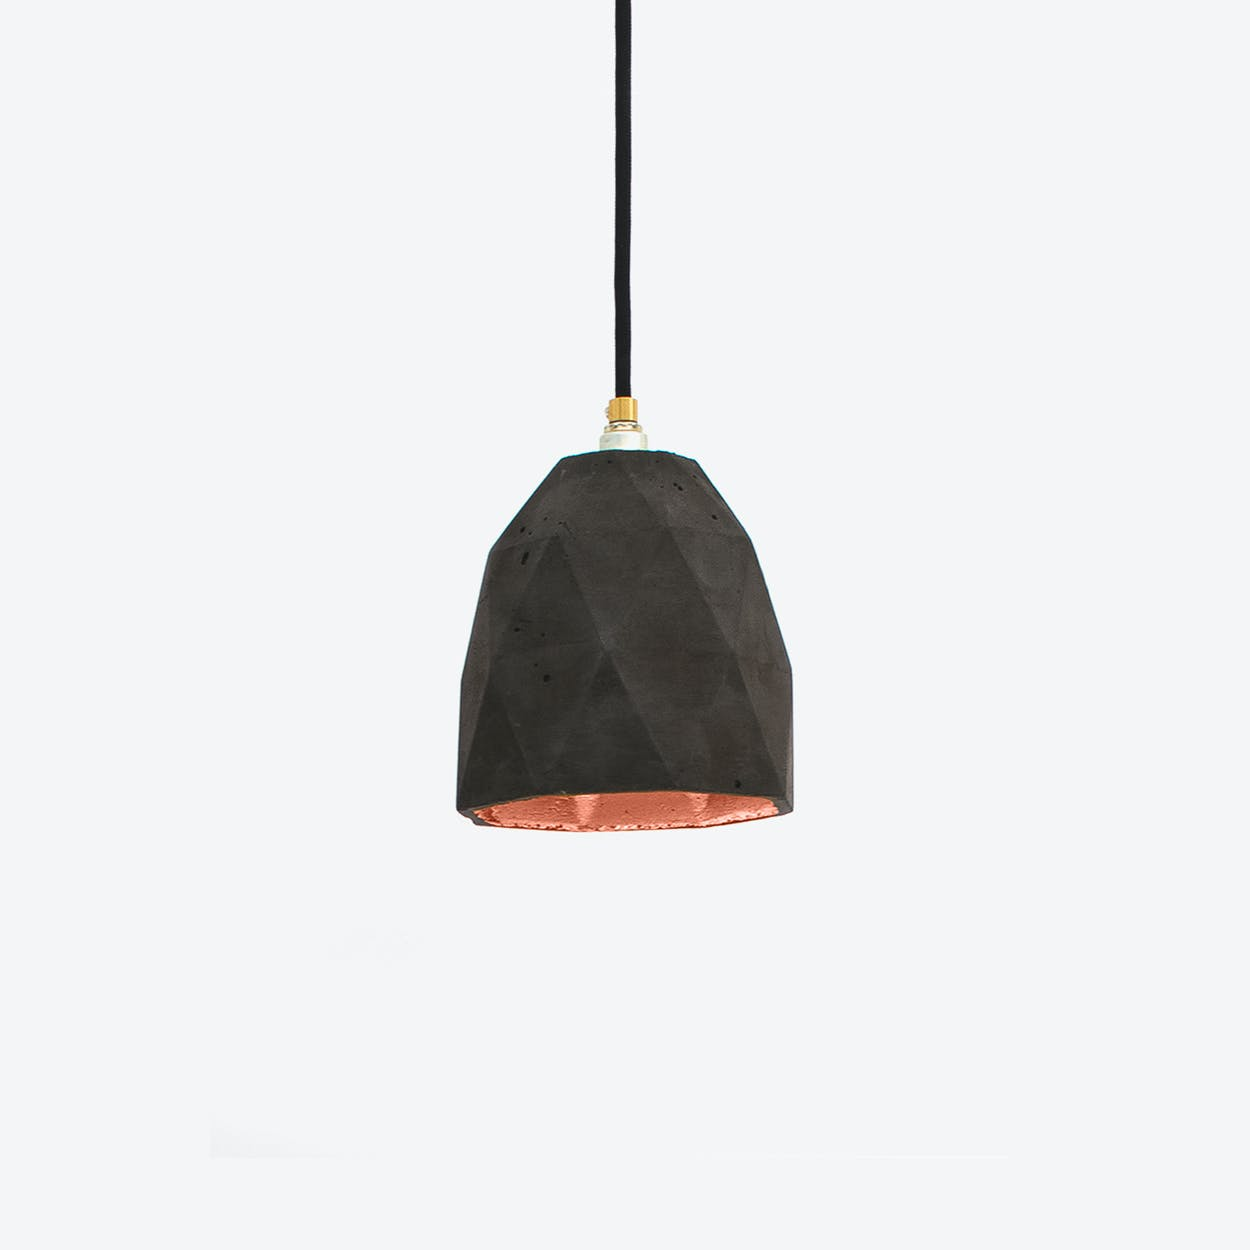 Concrete Pendant Light Triangle T1 in Dark Grey and Copper